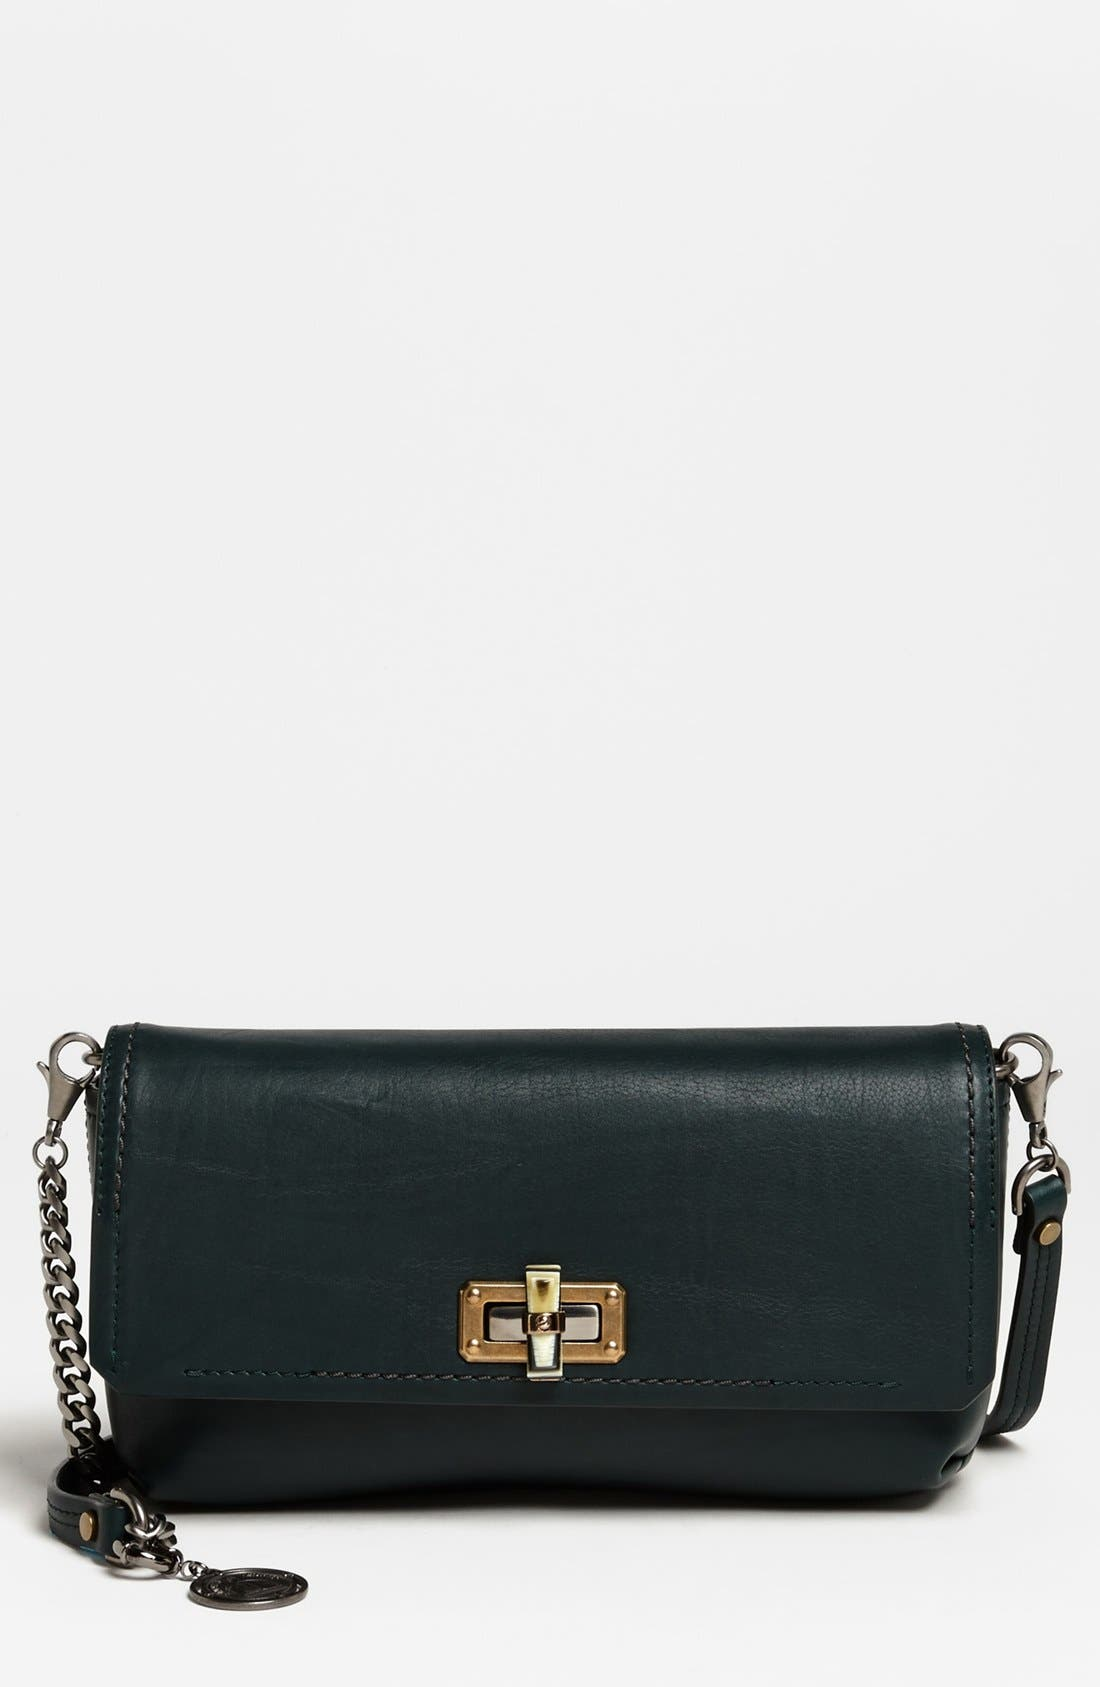 Main Image - Lanvin 'Happy' Leather Crossbody Bag